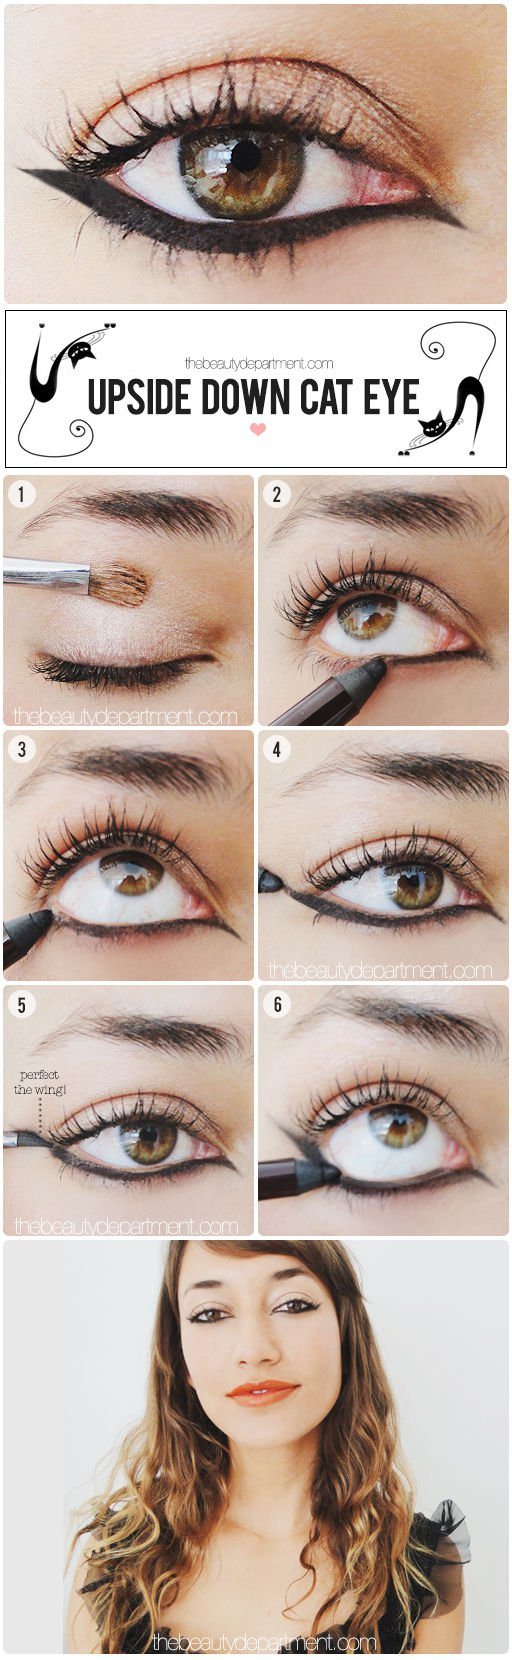 17 Smooth Makeup Tips That Will Speed Up Your Preparation In The Lazy Days